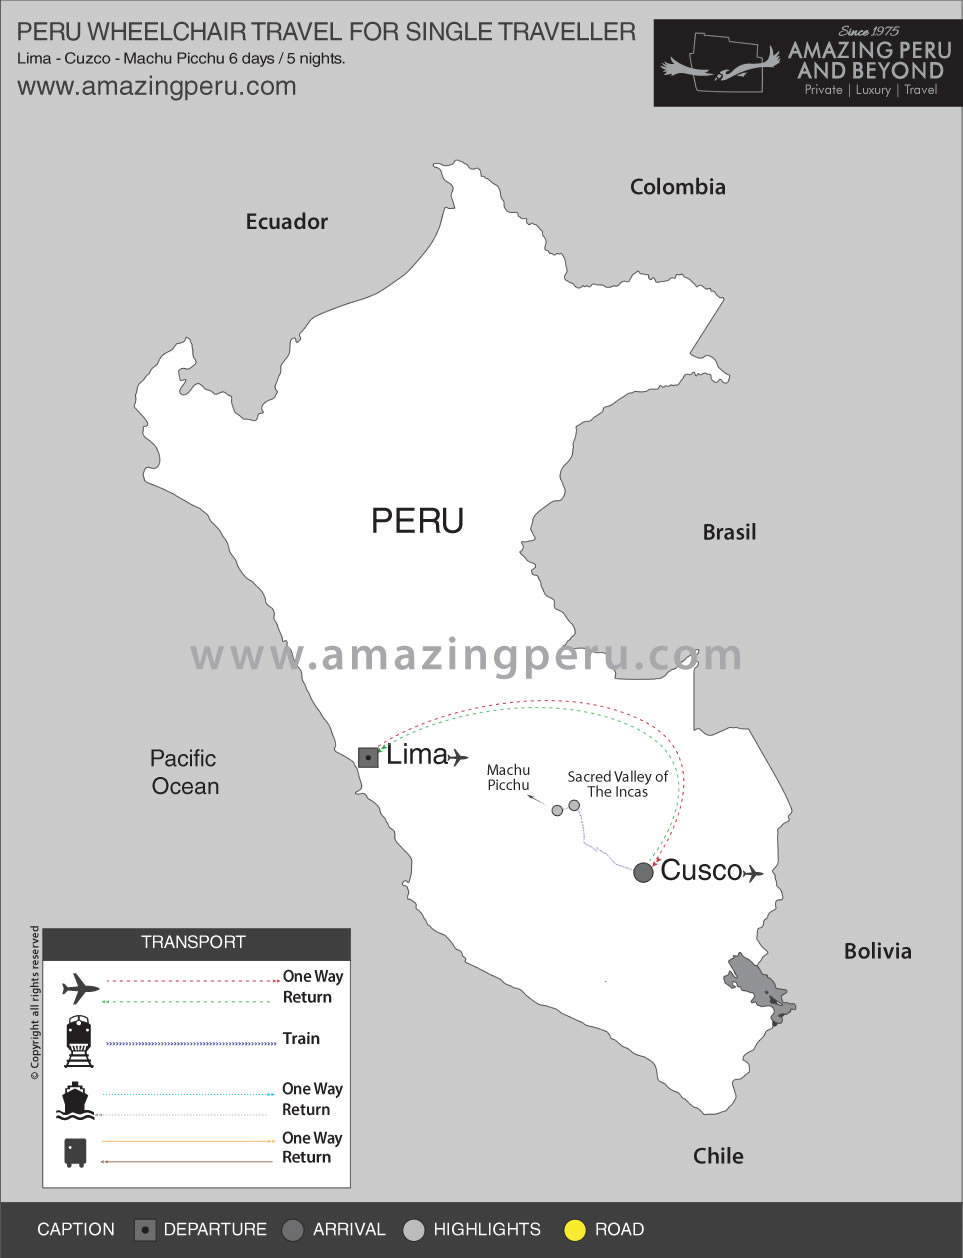 Peru Wheelchair Travel for Single traveller - 6 days / 5 nights.